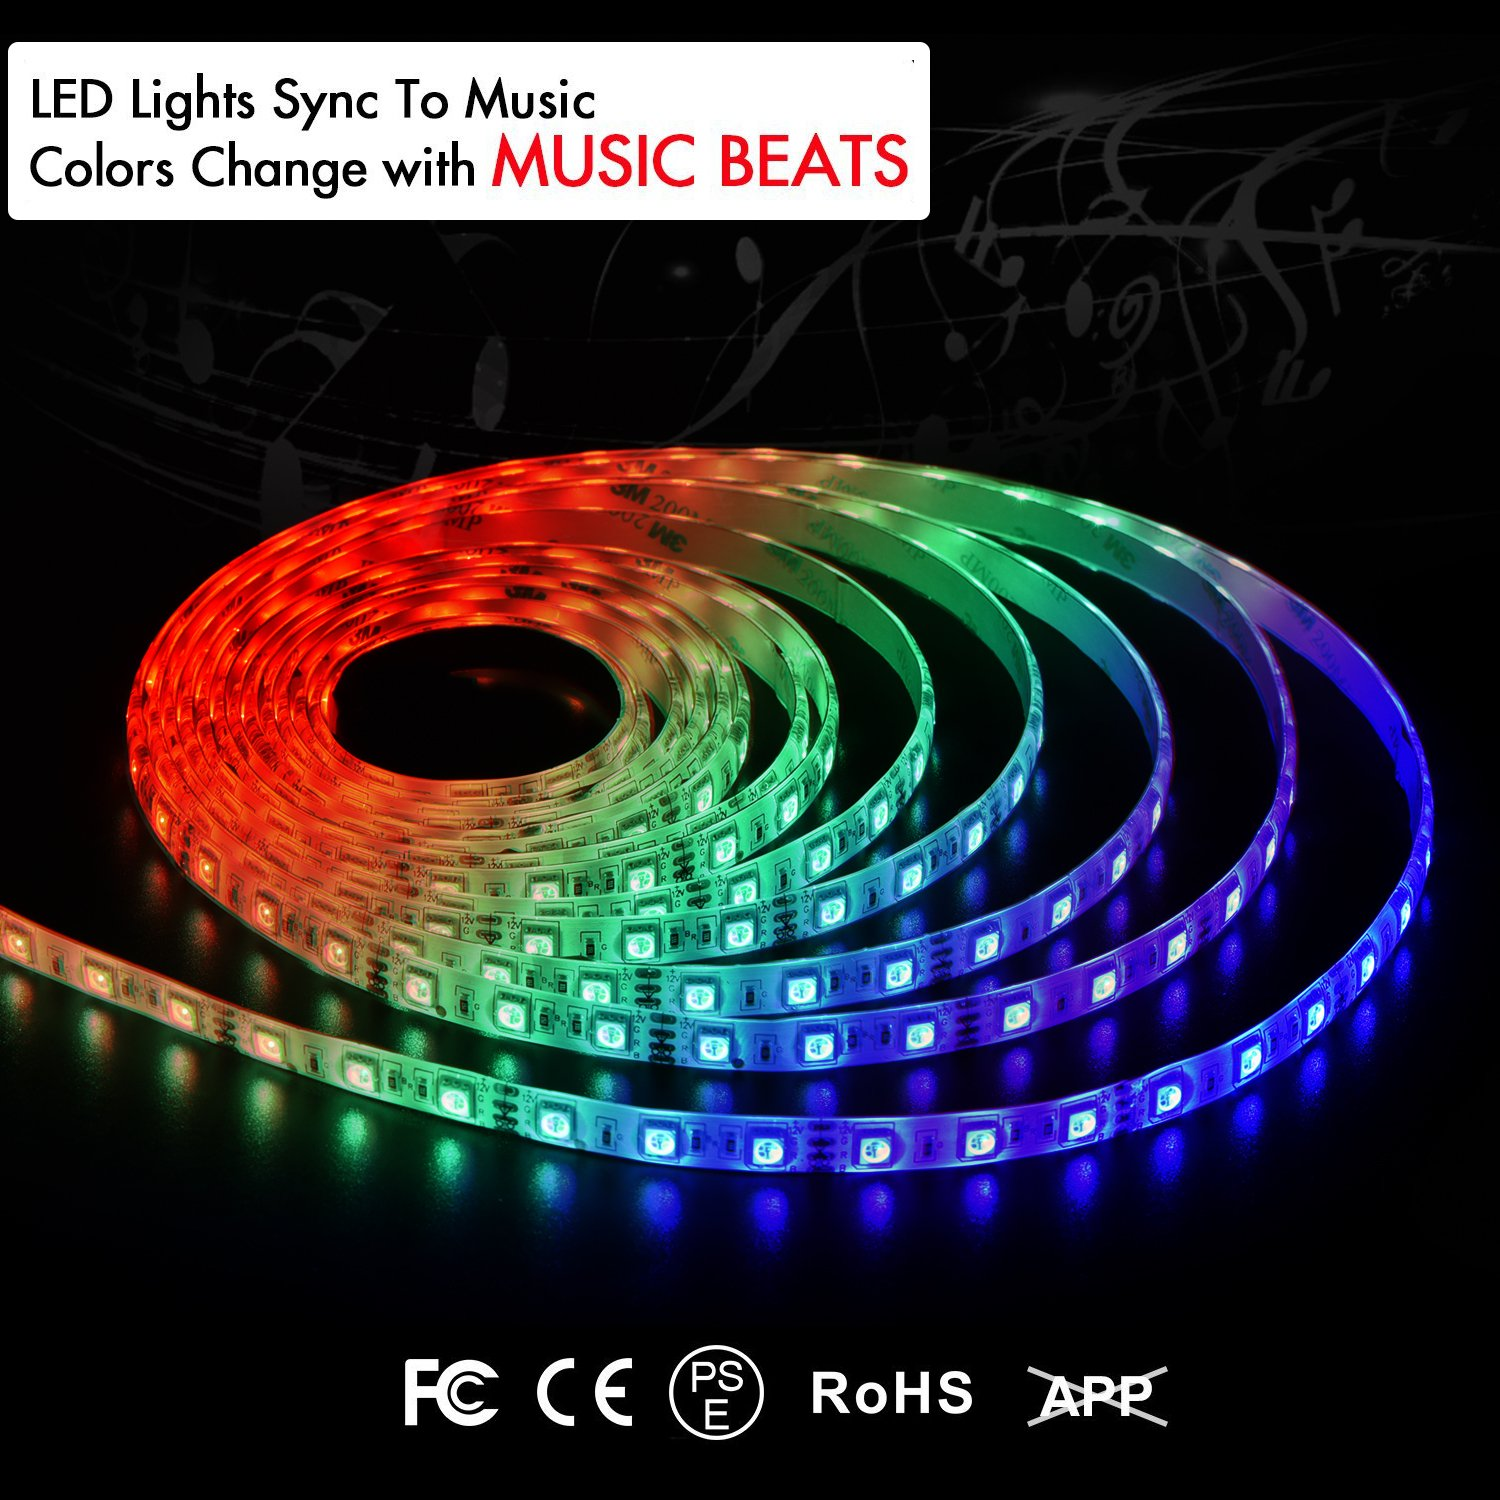 LKARM LED Strip Lights Sync with Music, 12V Music Sync Waterproof 16 Colors RGB LED Strip Lights 16.4ft Flexible with 3M Tape/ 300 LED SMD 5050/IR Controller, DIY Christmas Party & Decoration